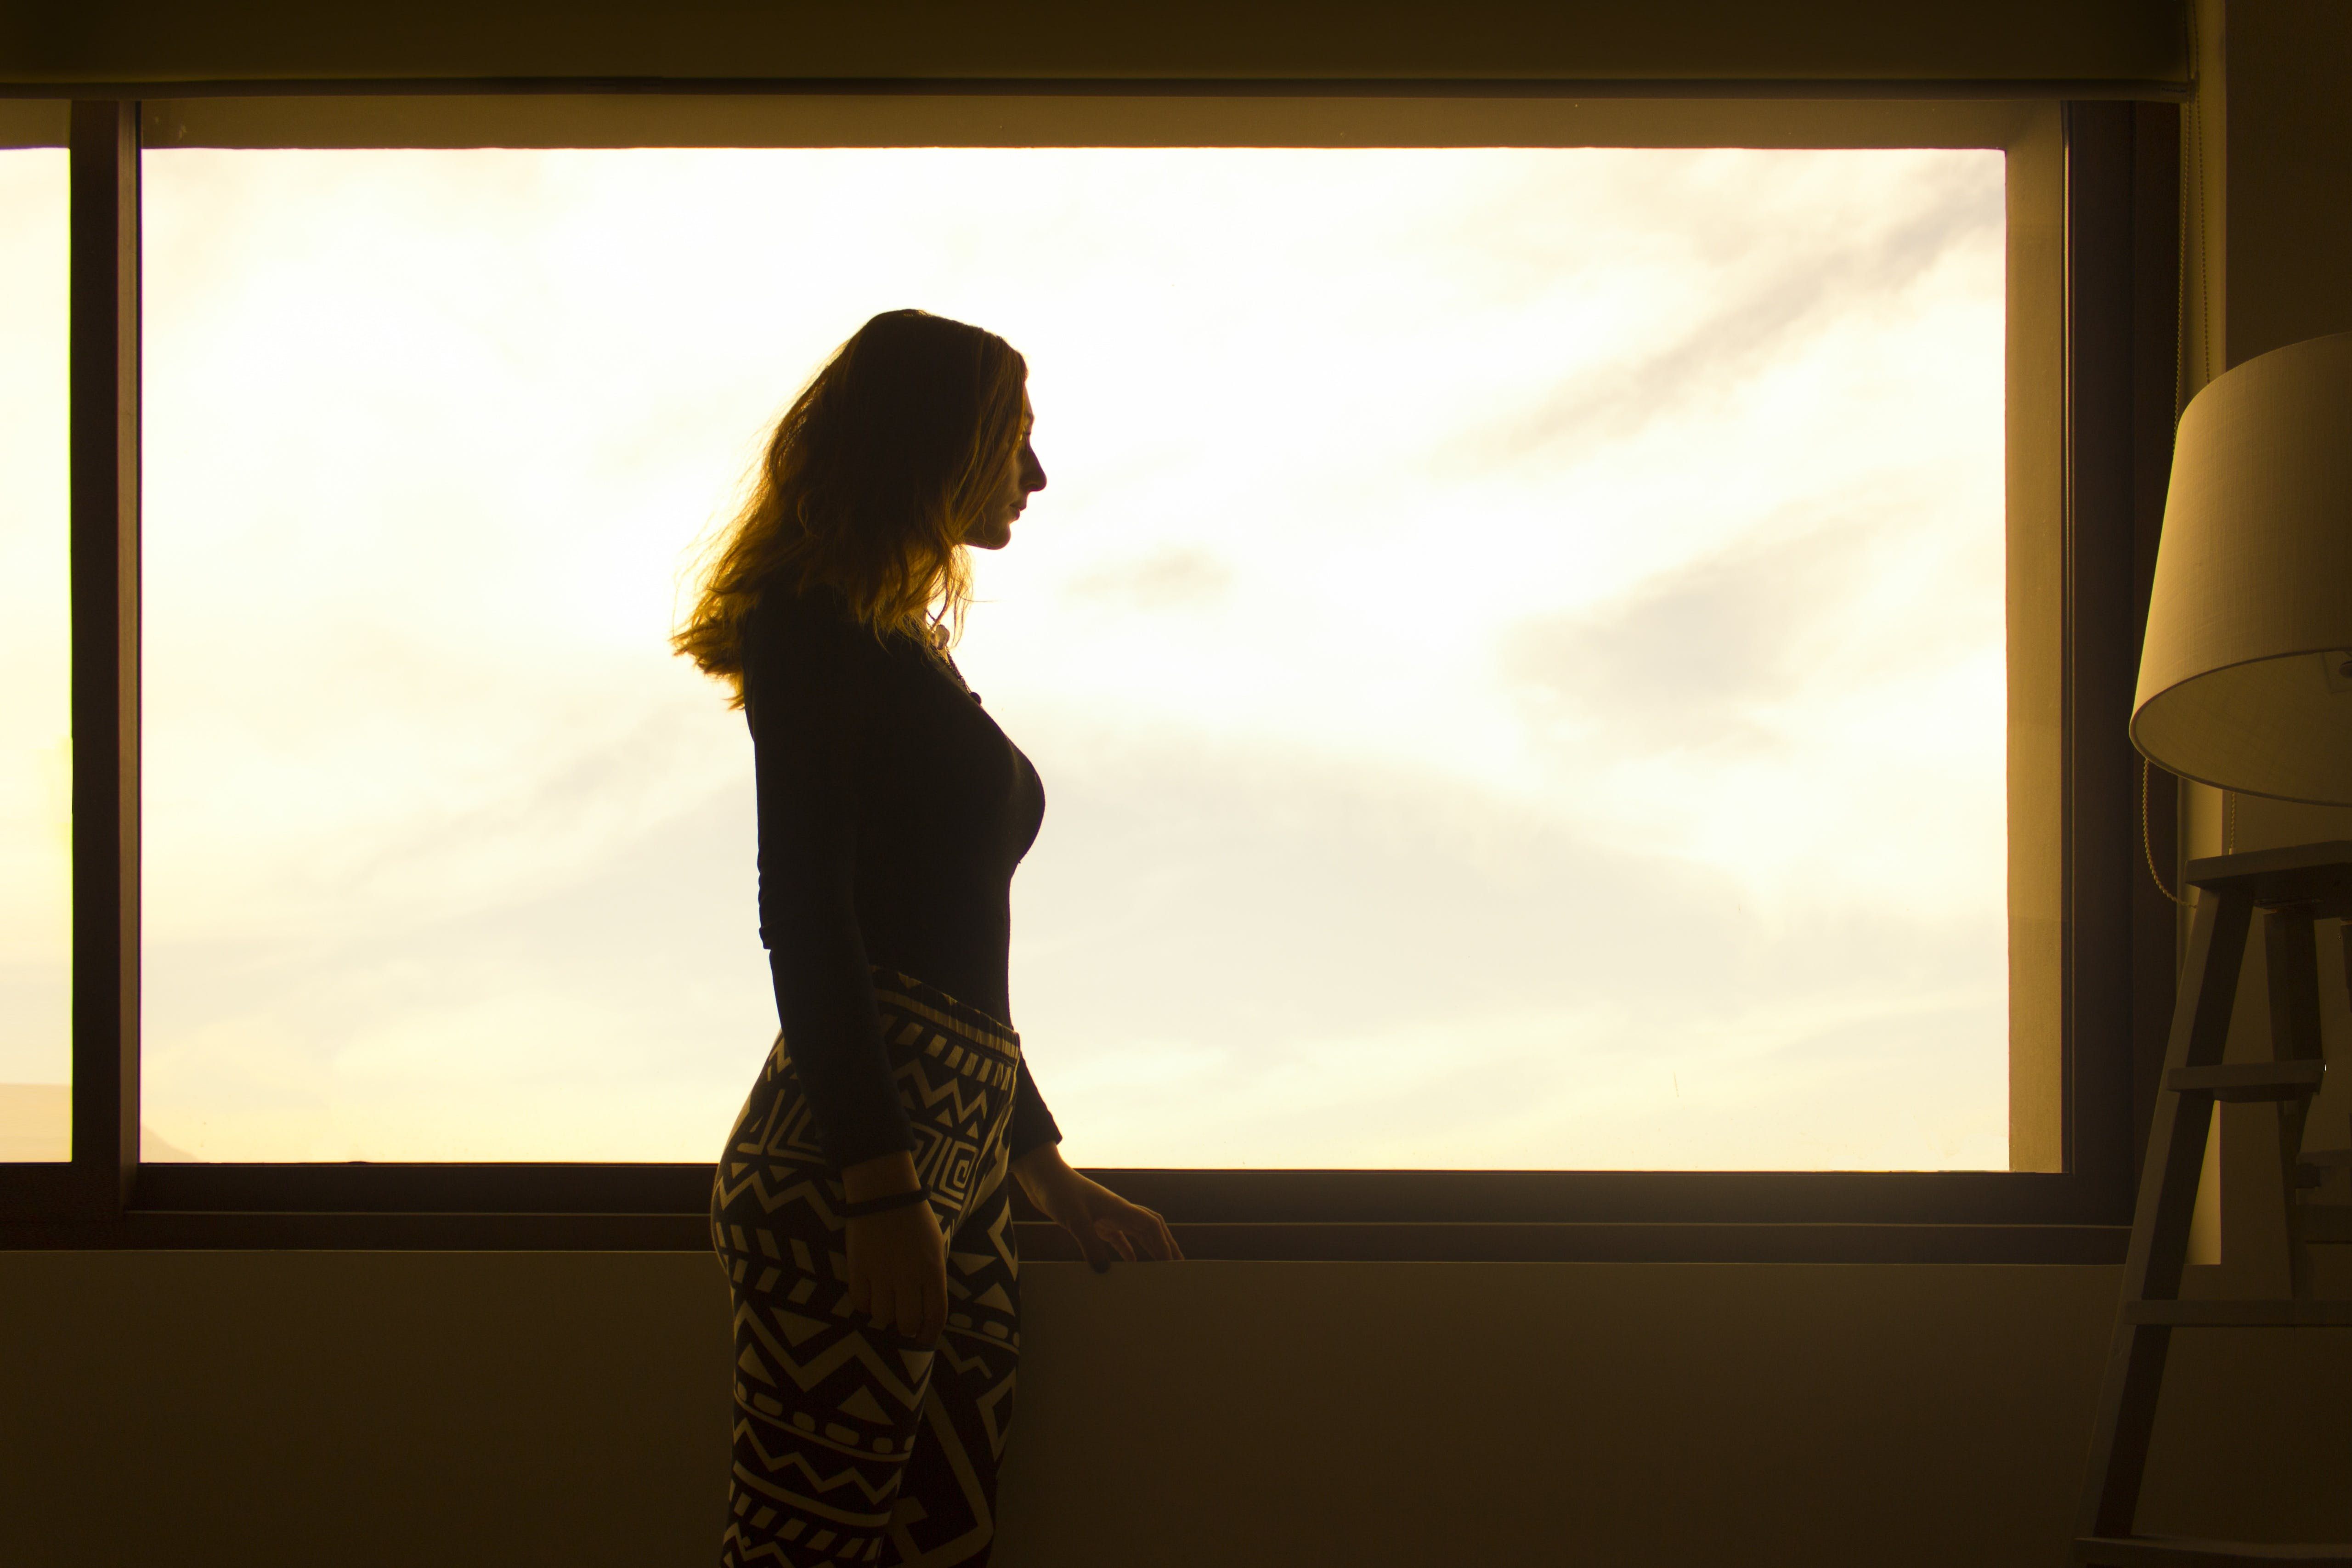 Woman in Black Long Sleeve Shirt and Tribal Leggings Standing by the Window during Daytime